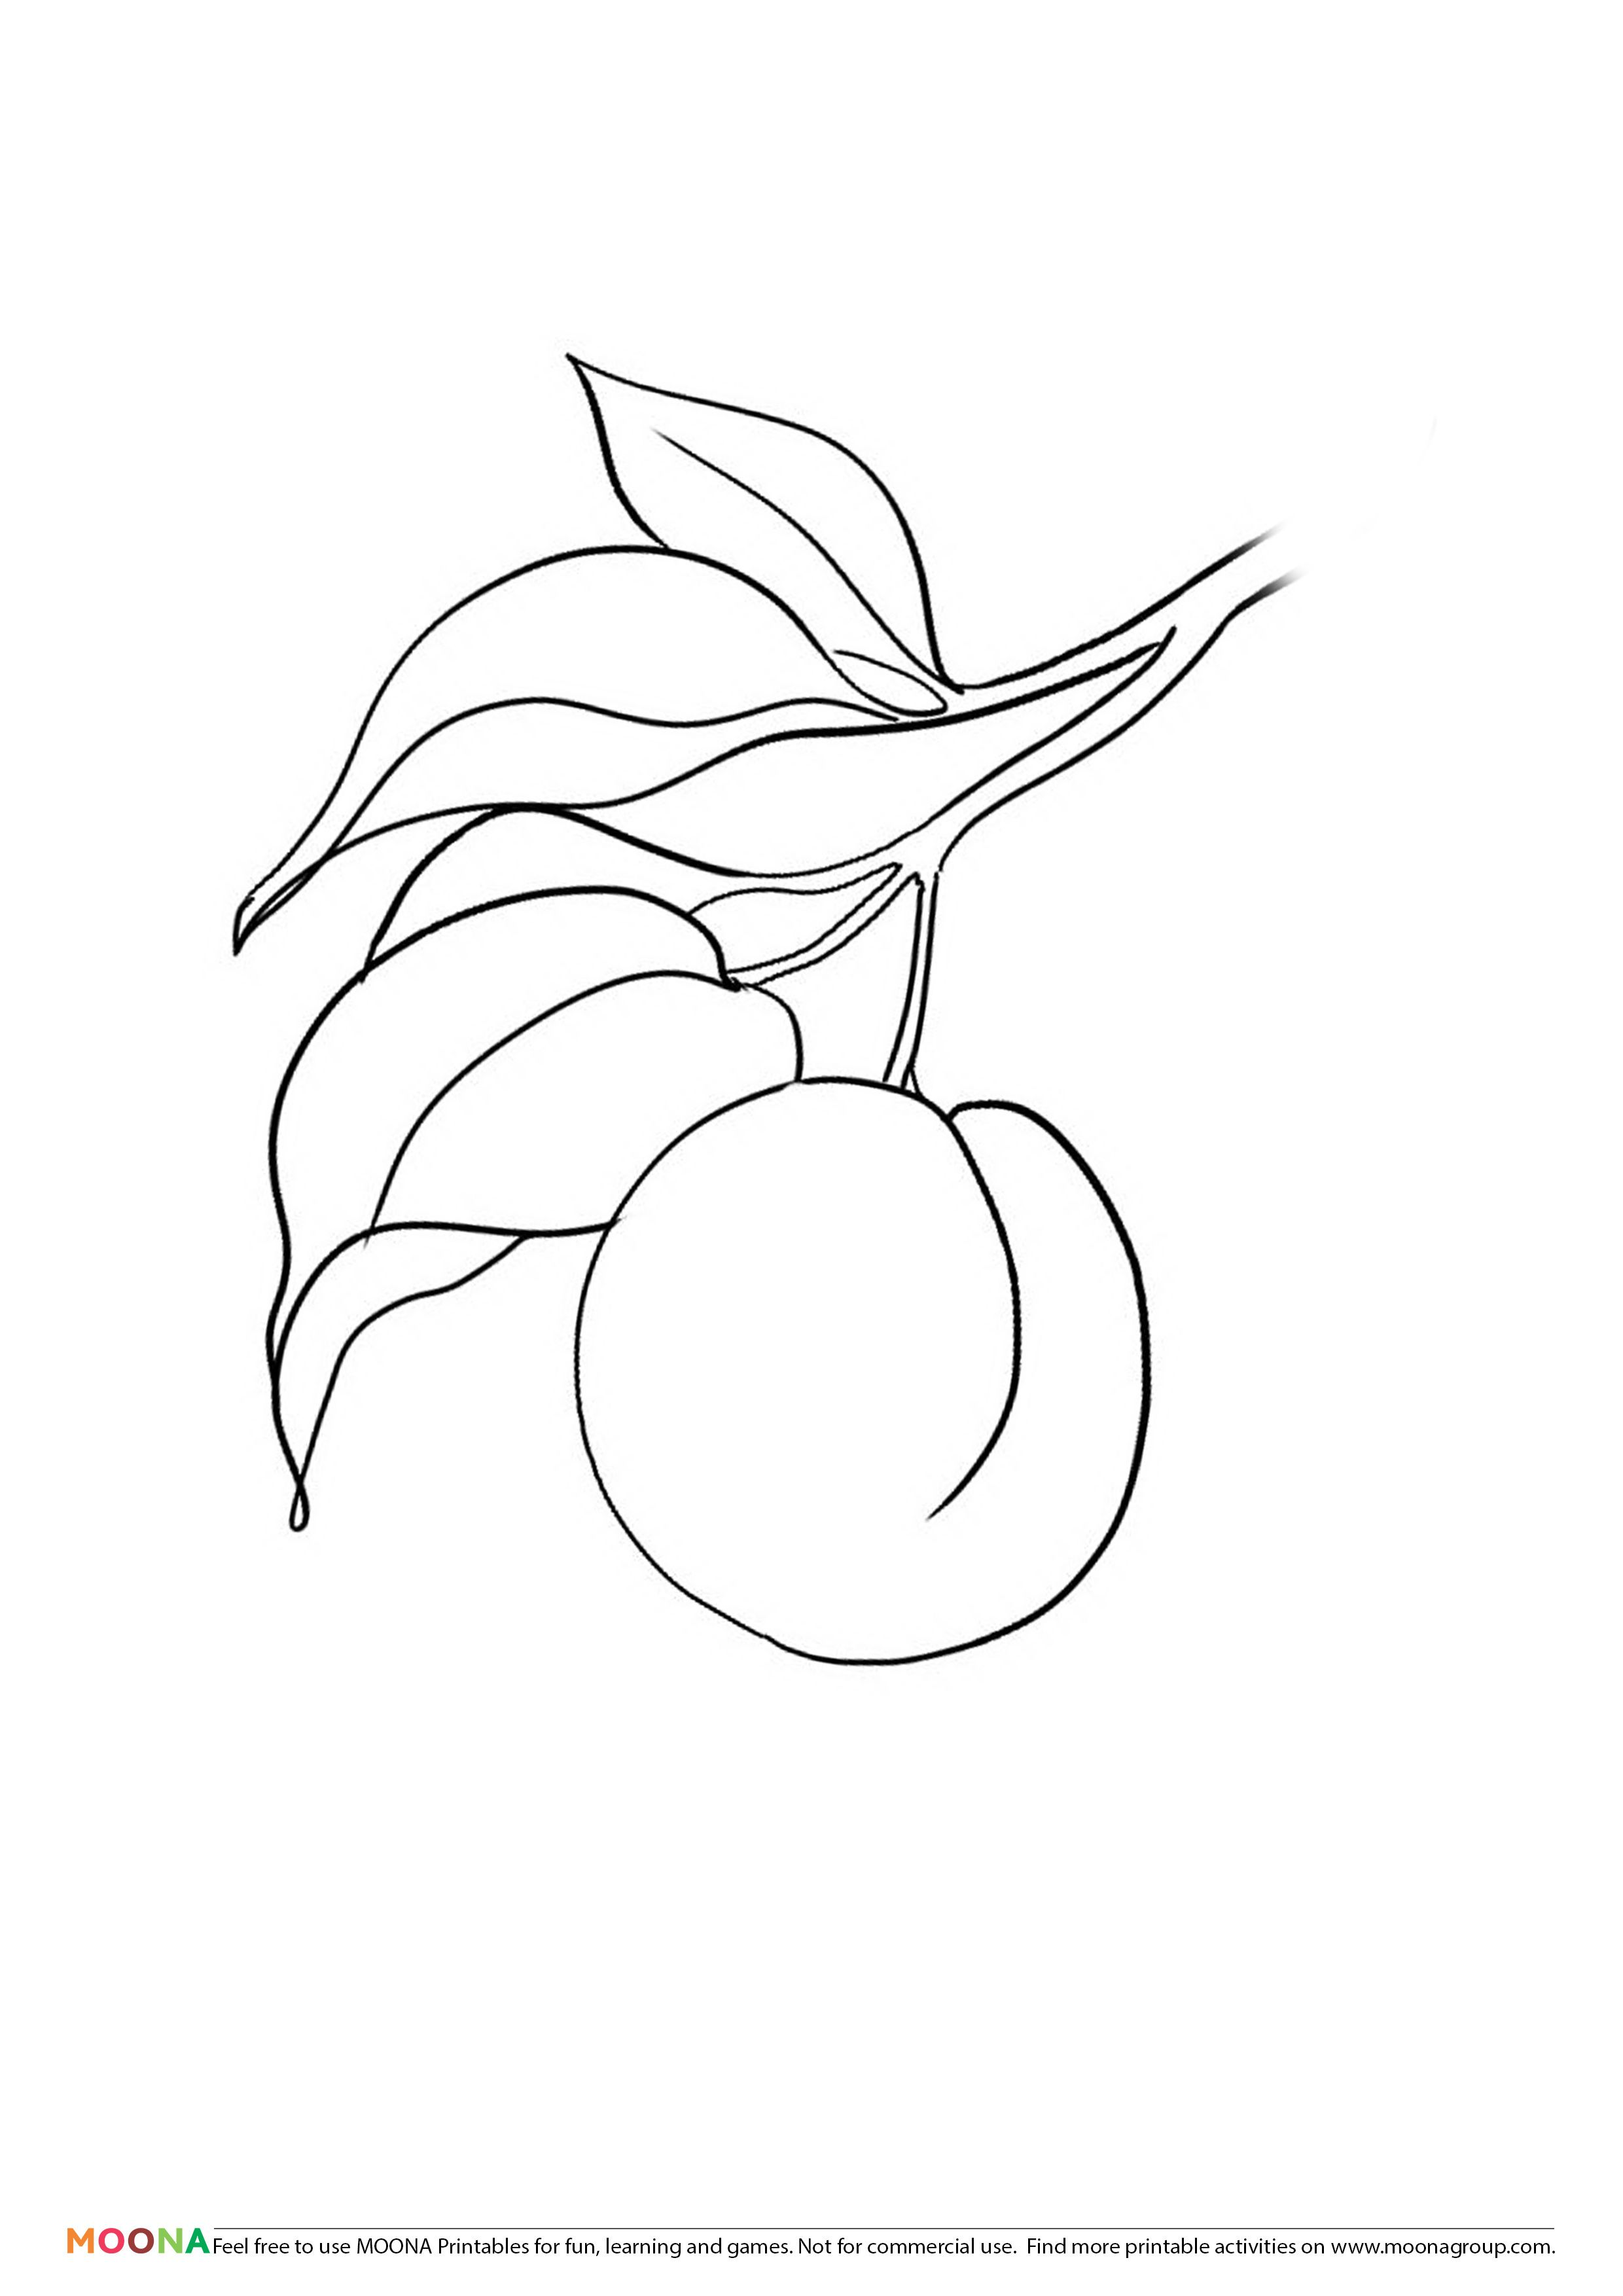 Free Printable Coloring Pages Moona Fruits And Berries Riscos